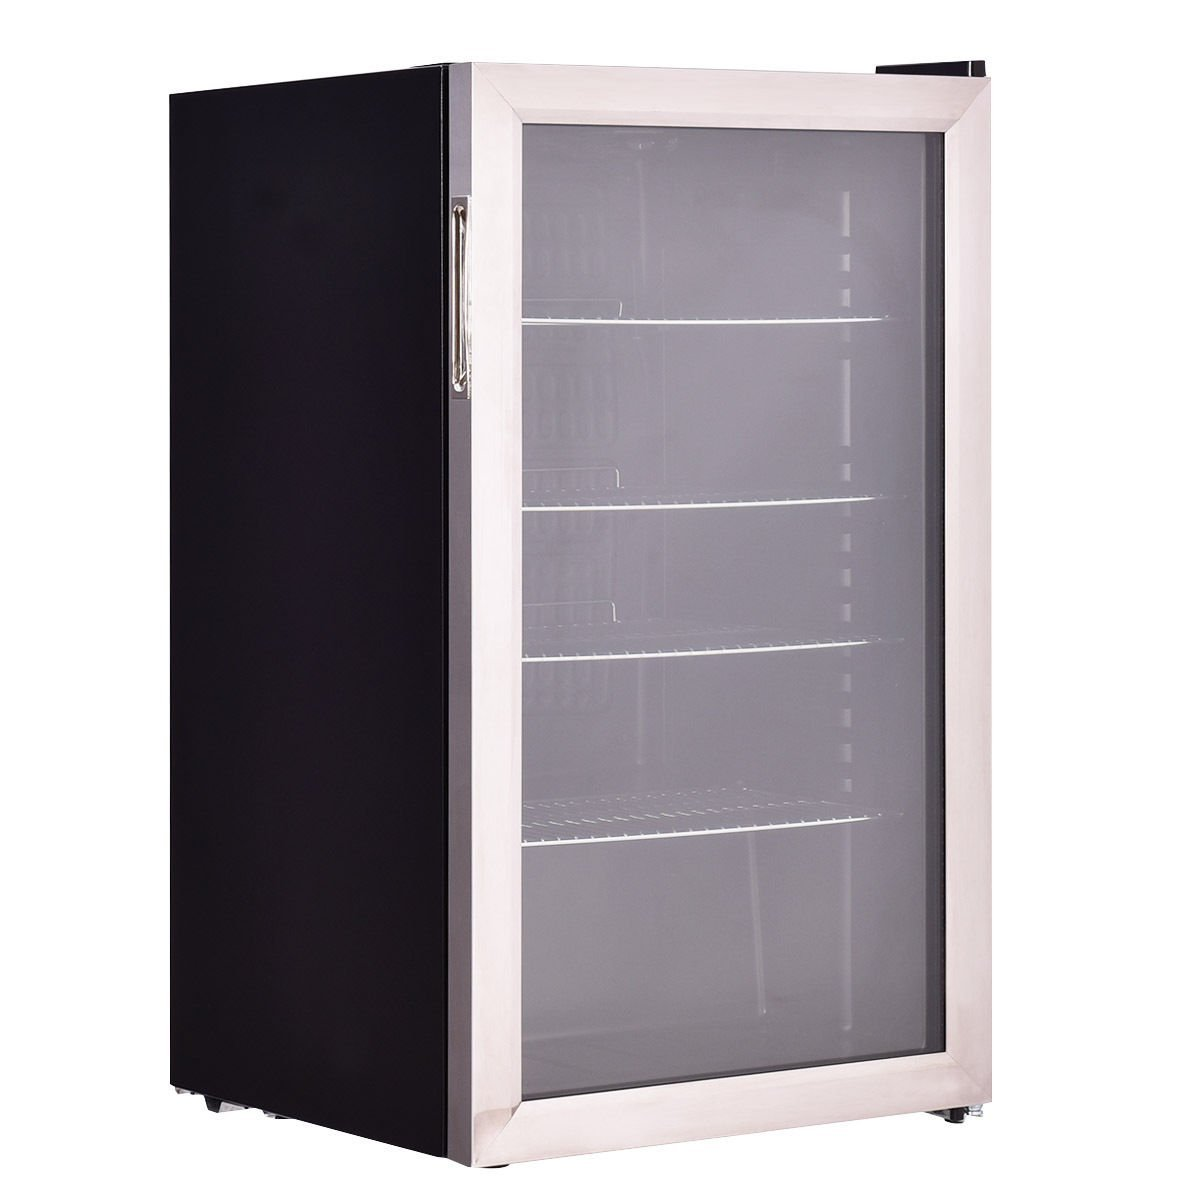 Costway 120 Can Beverage Refrigerator Beer Wine Soda Drink Beverage Cooler Mini Fridge